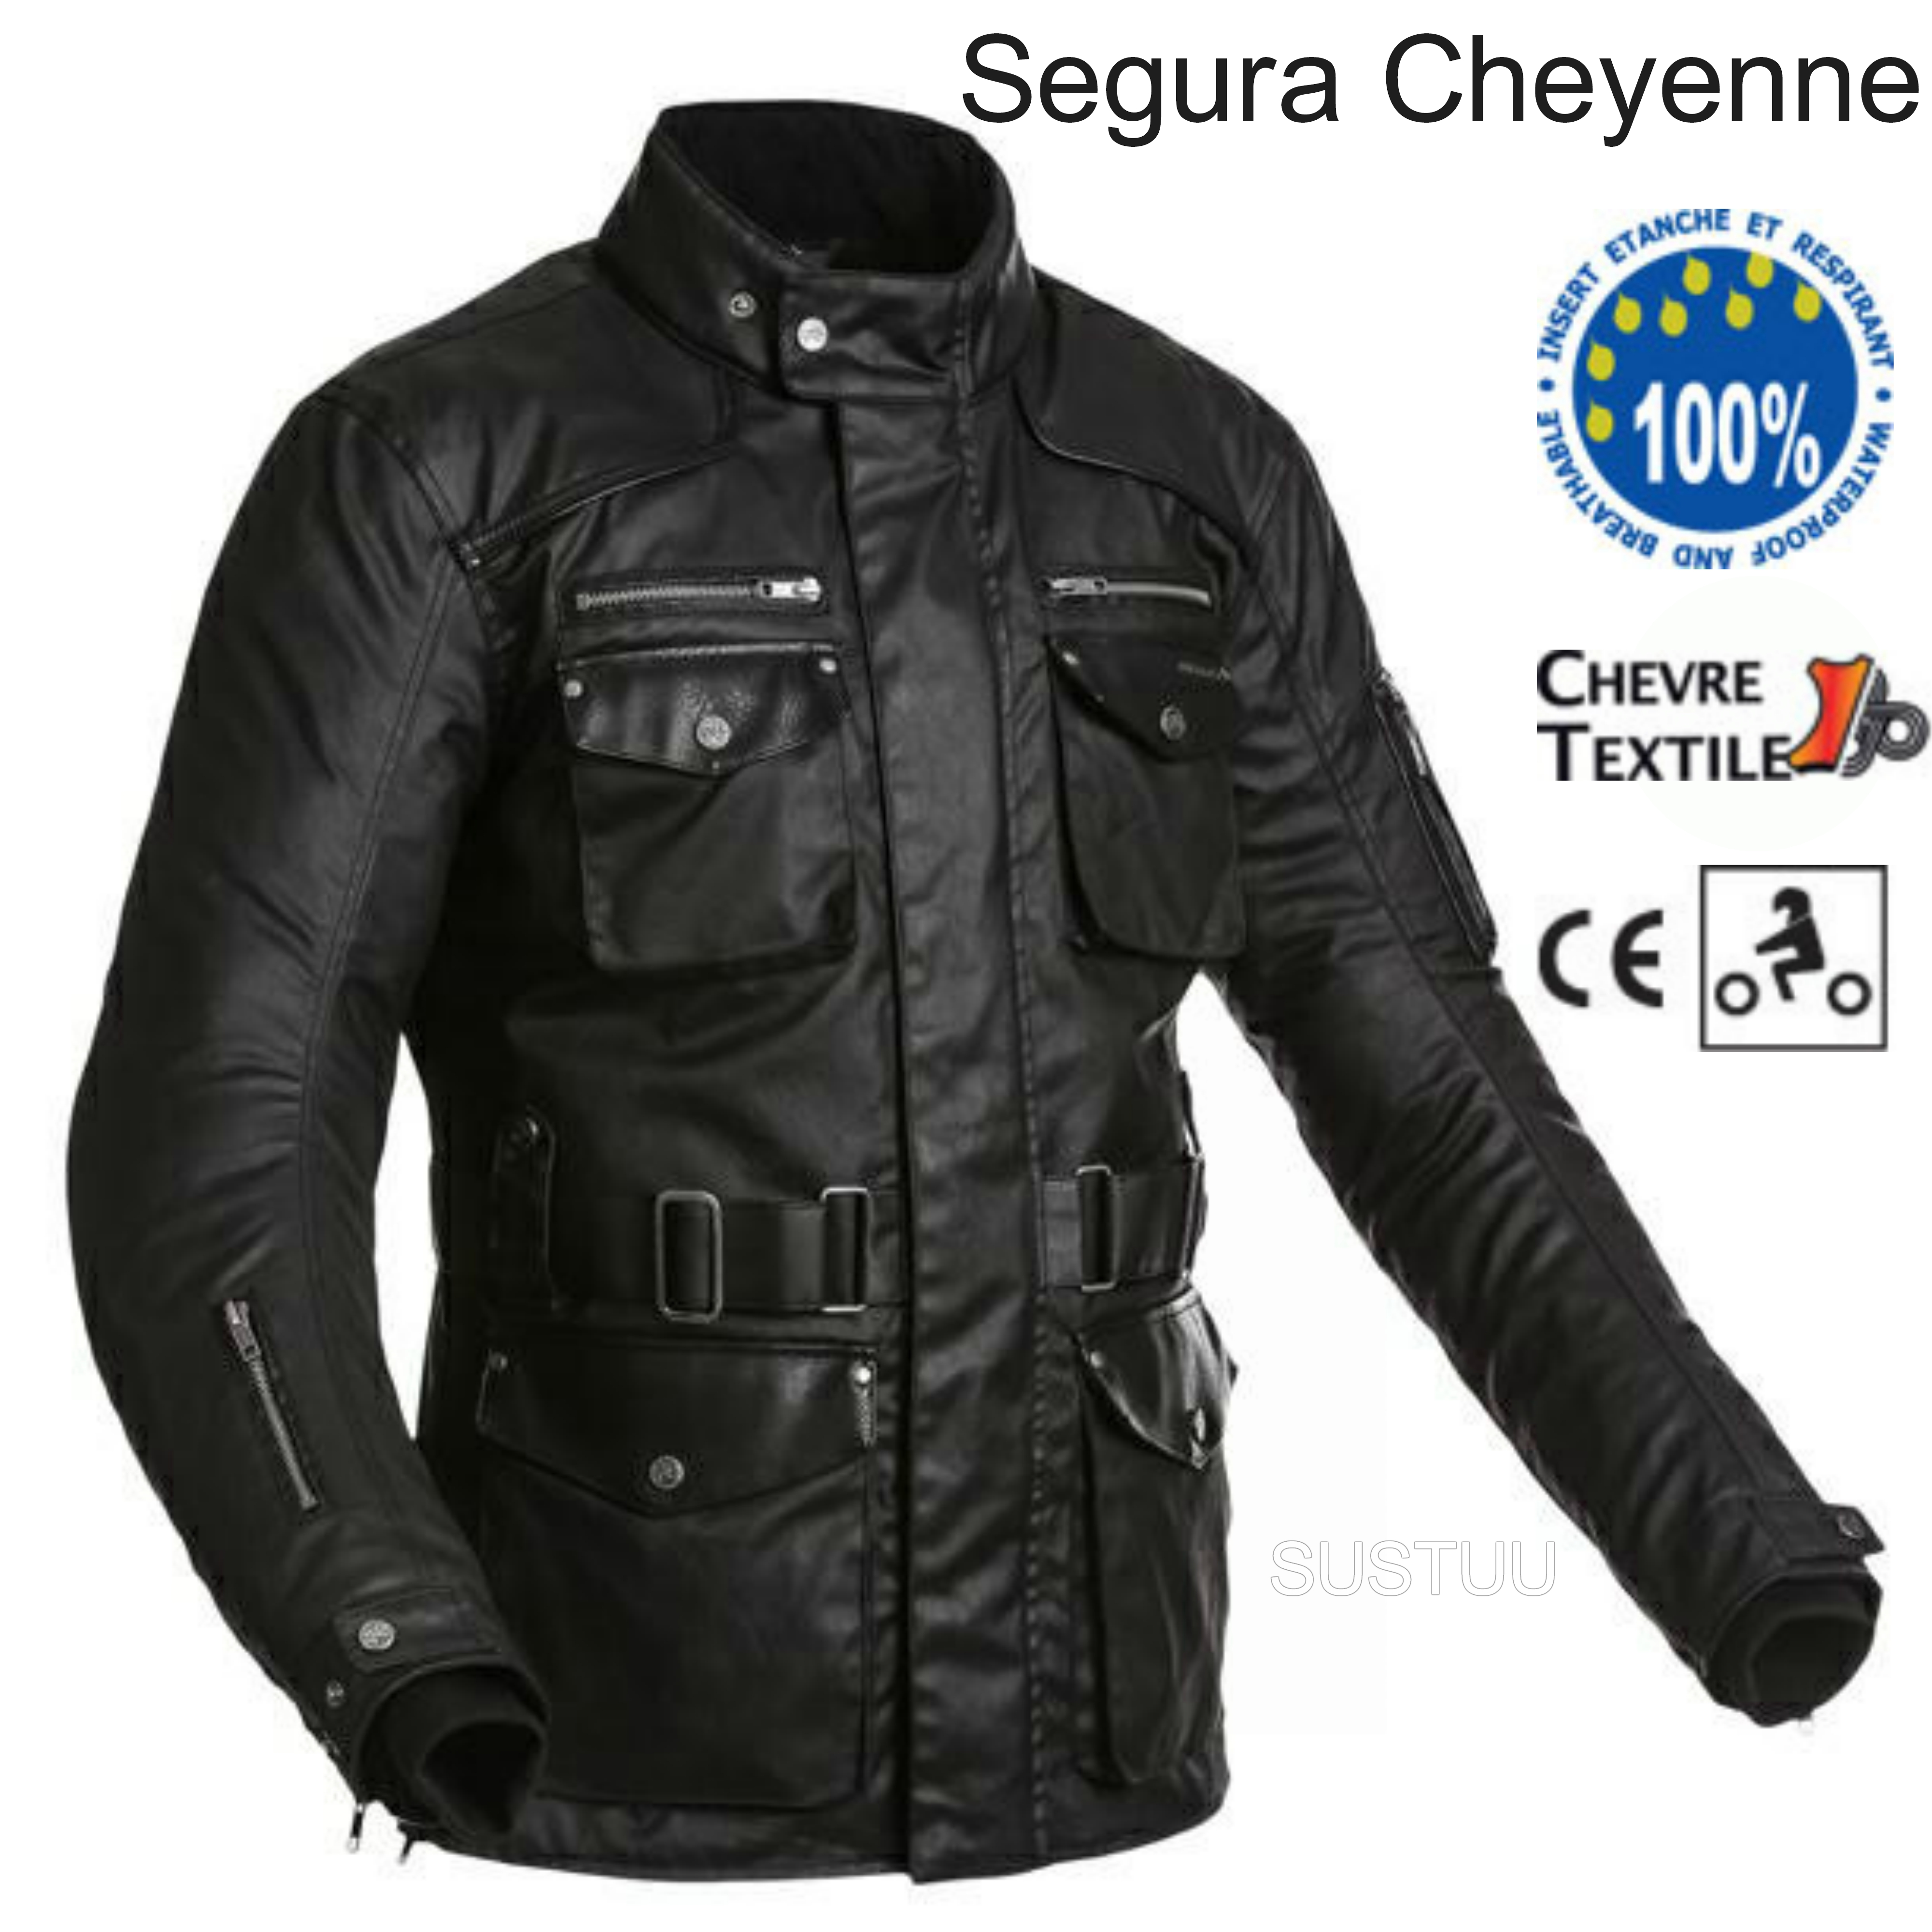 Segura Cheyenne Textile Men Jacket|Waterproof|Breathable|Mesh|CE Approved|Black